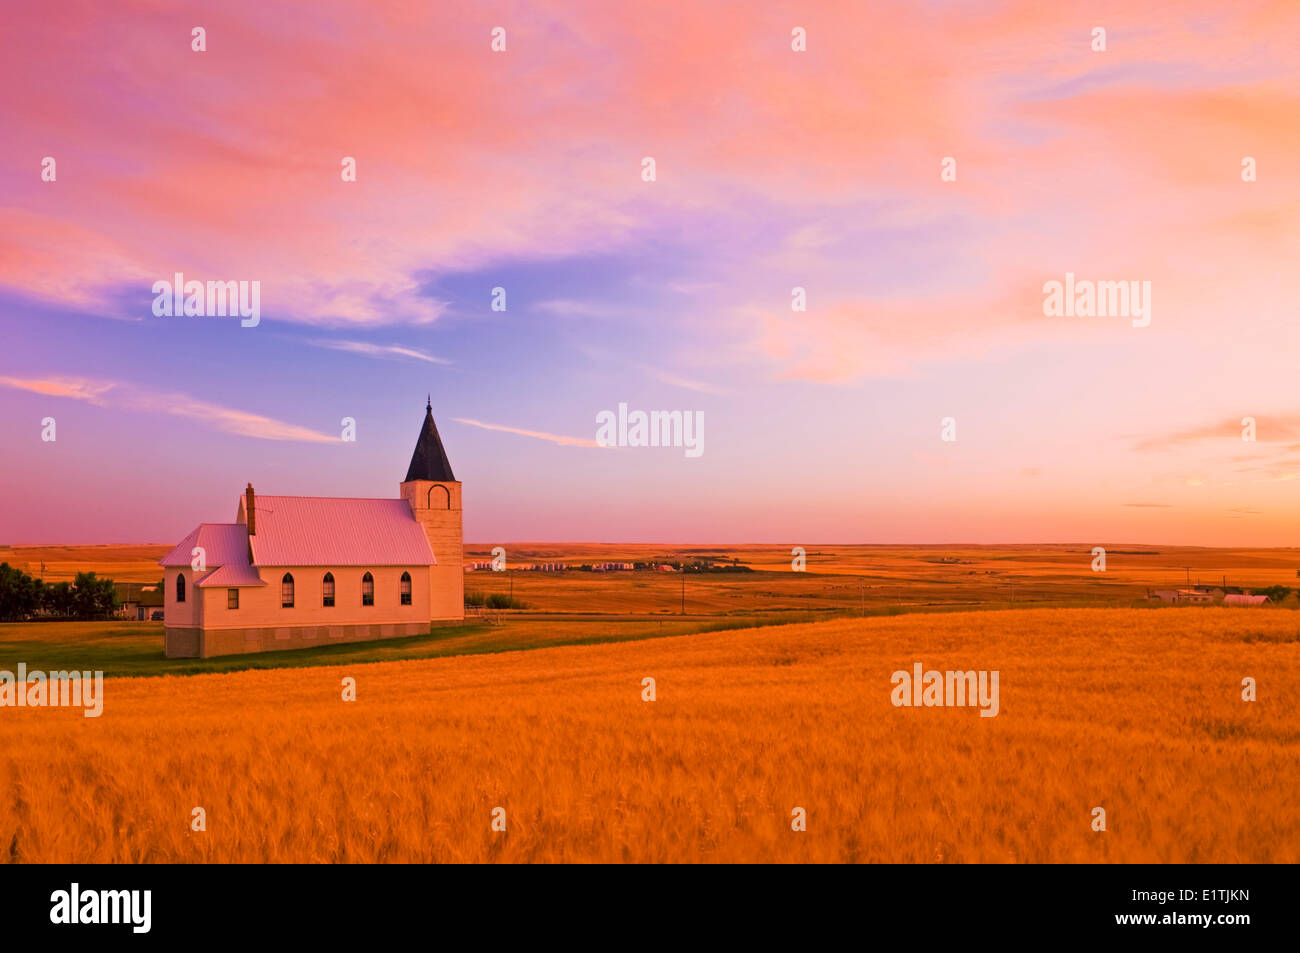 mature, harvest ready wheat field with church in the background, Admiral, Saskatchewan, Canada - Stock Image